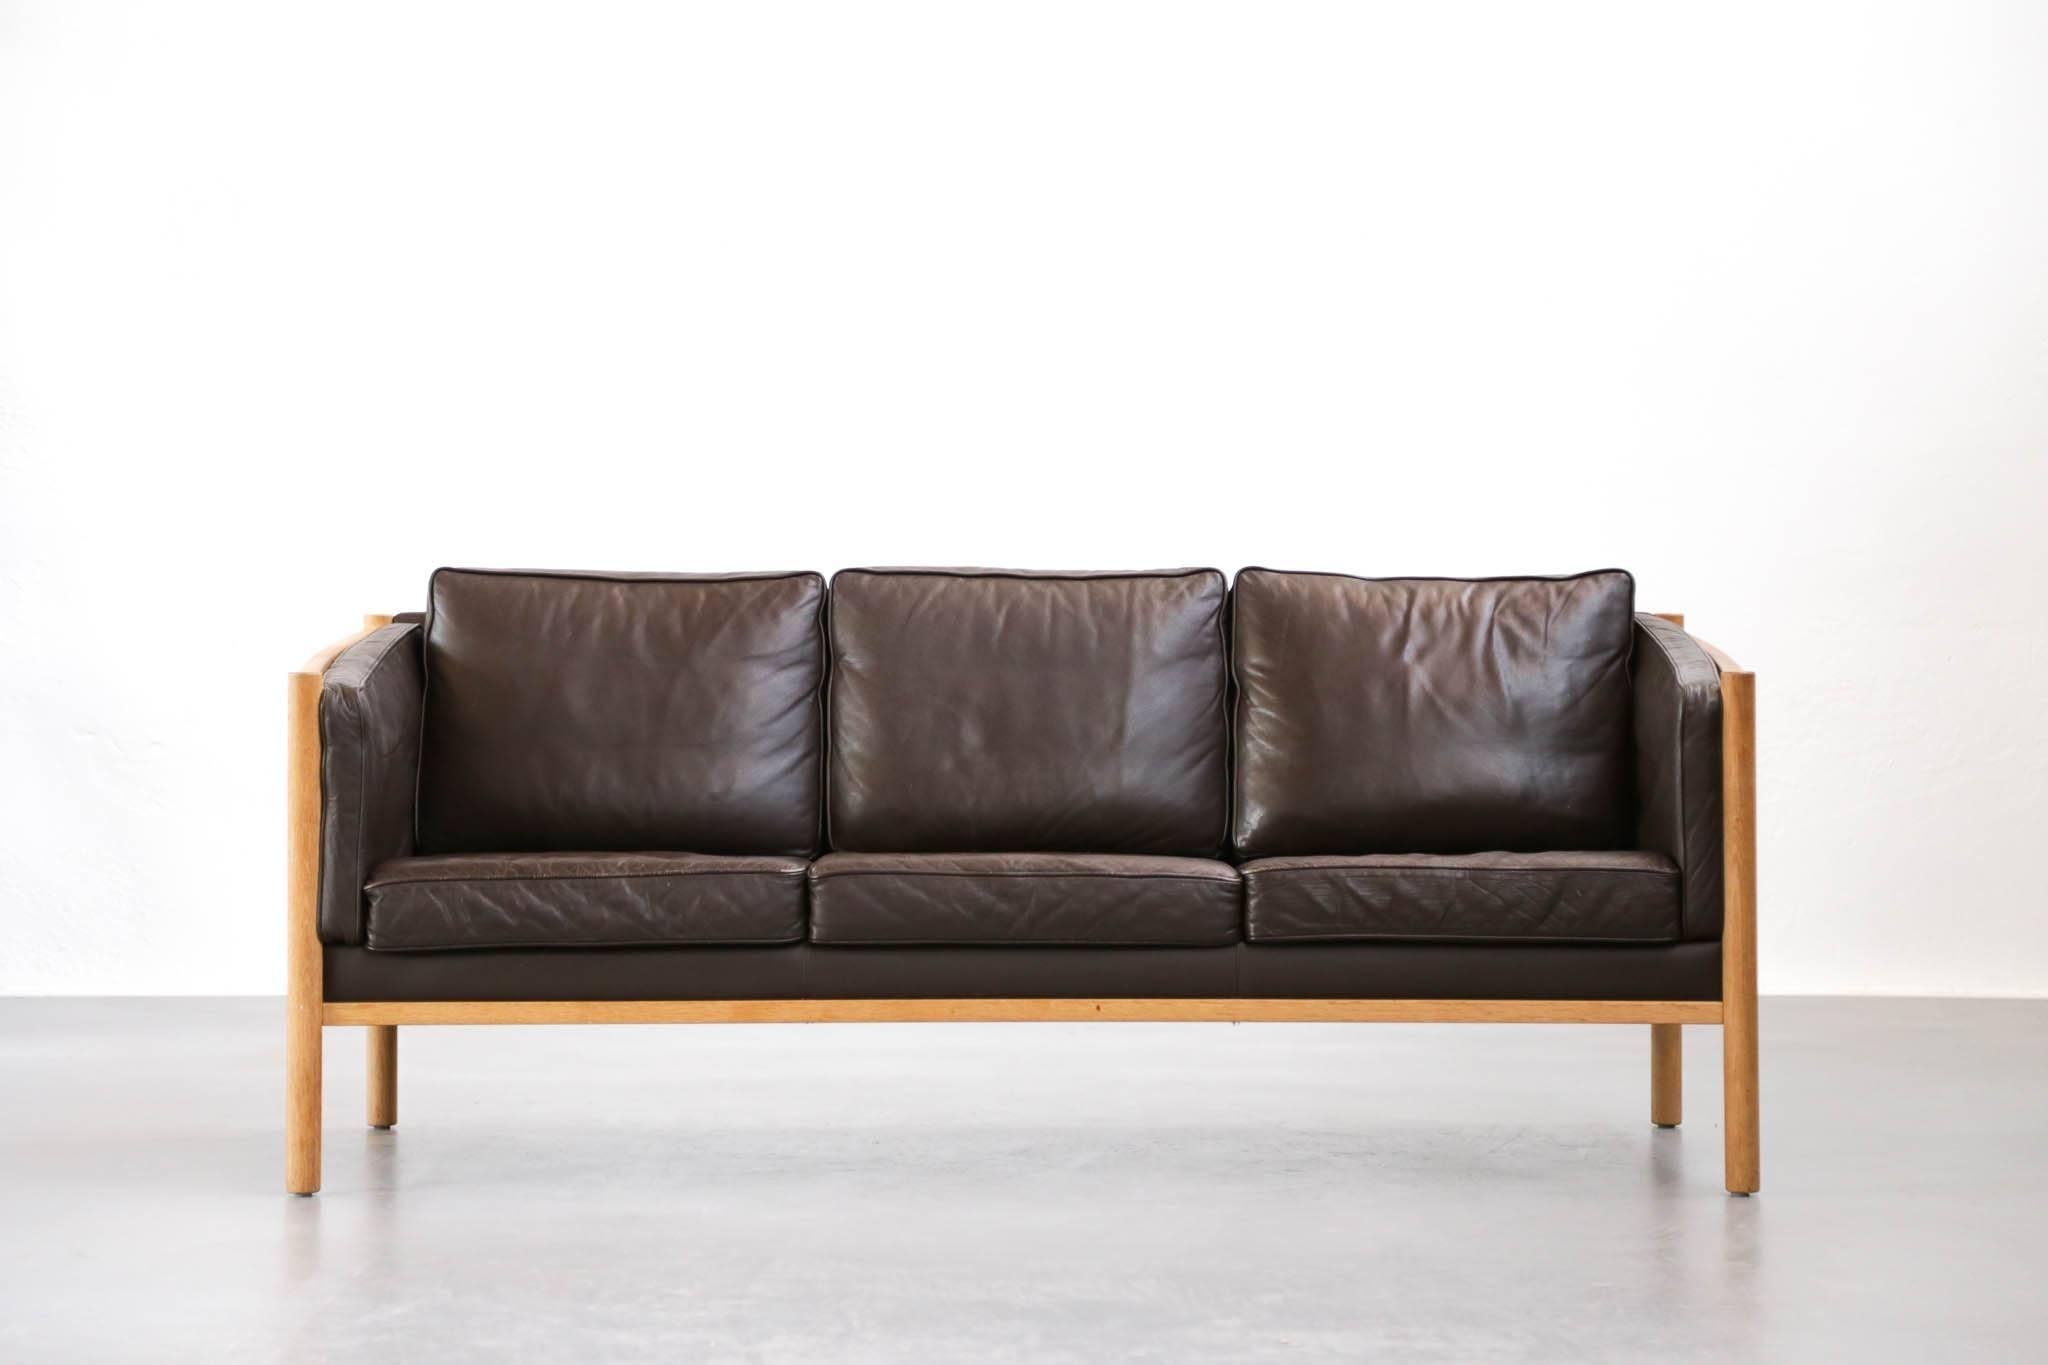 Scandinavian Sofa Made Of Oak Frame And Leather Cushions.